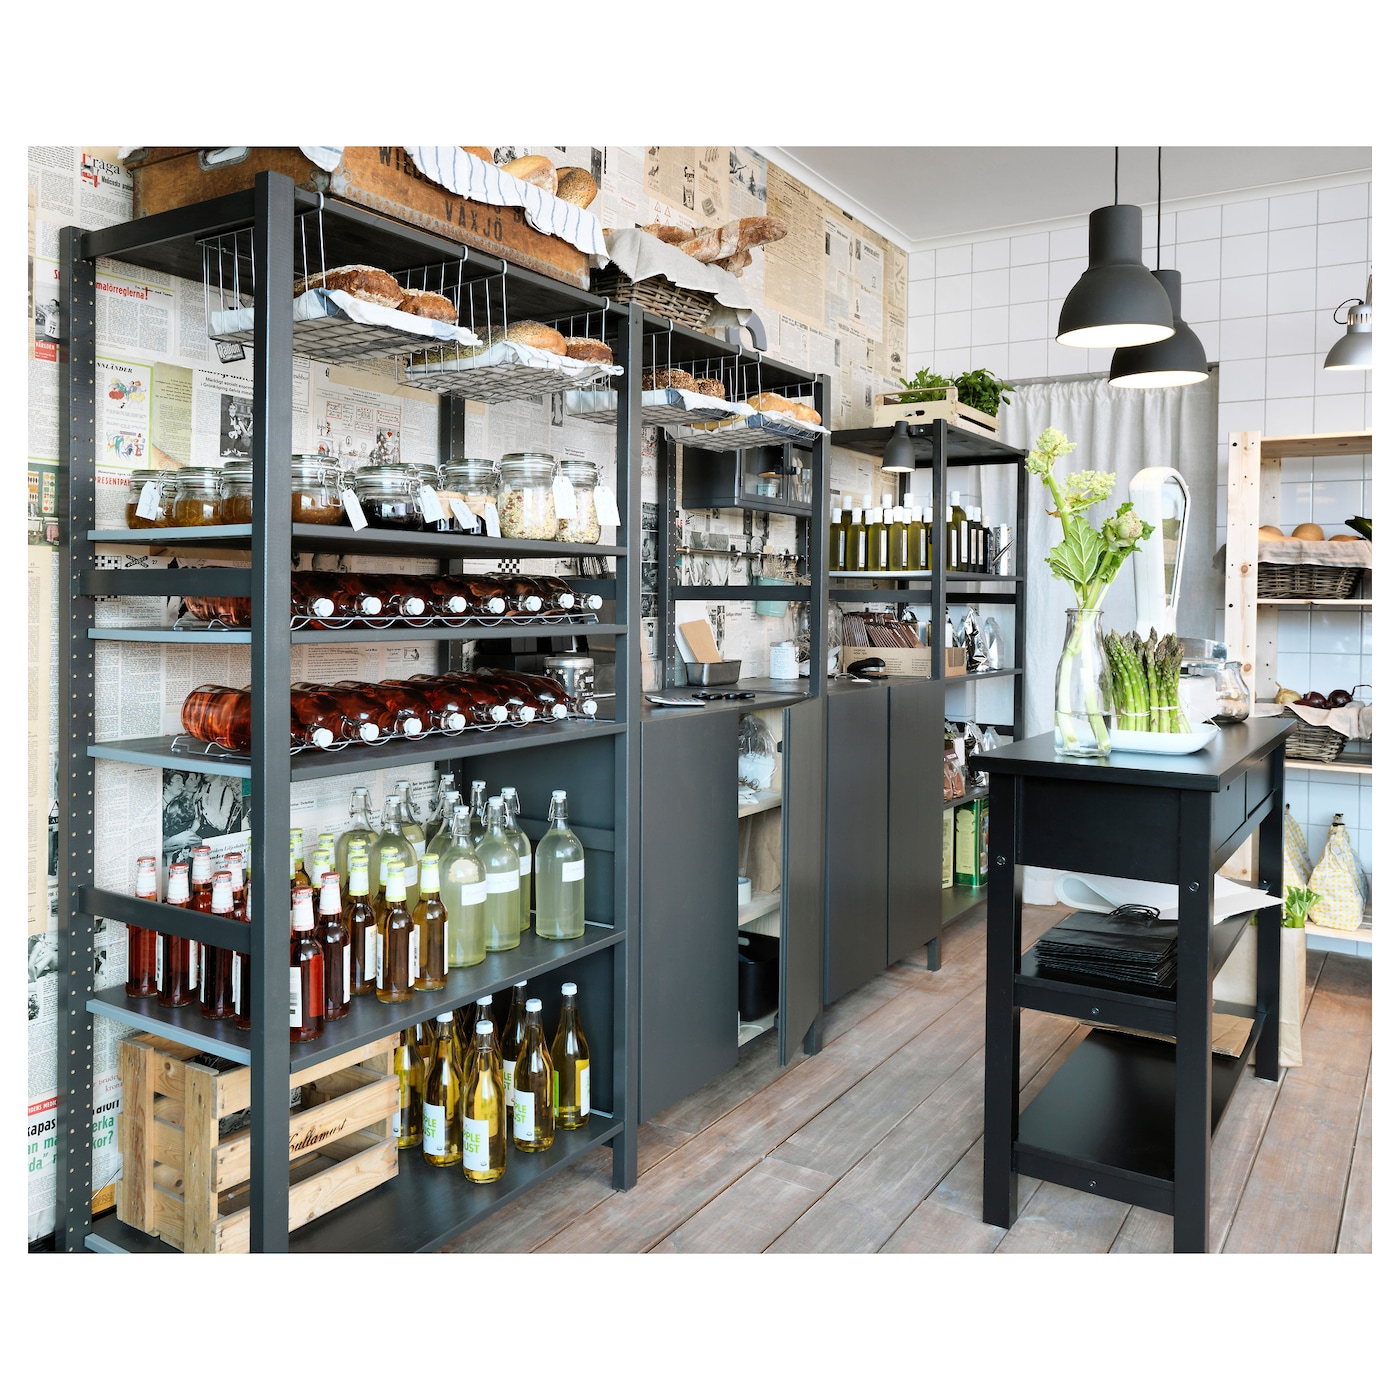 IKEA IVAR 4 sections/shelves You can move shelves and adapt spacing to suit your needs.